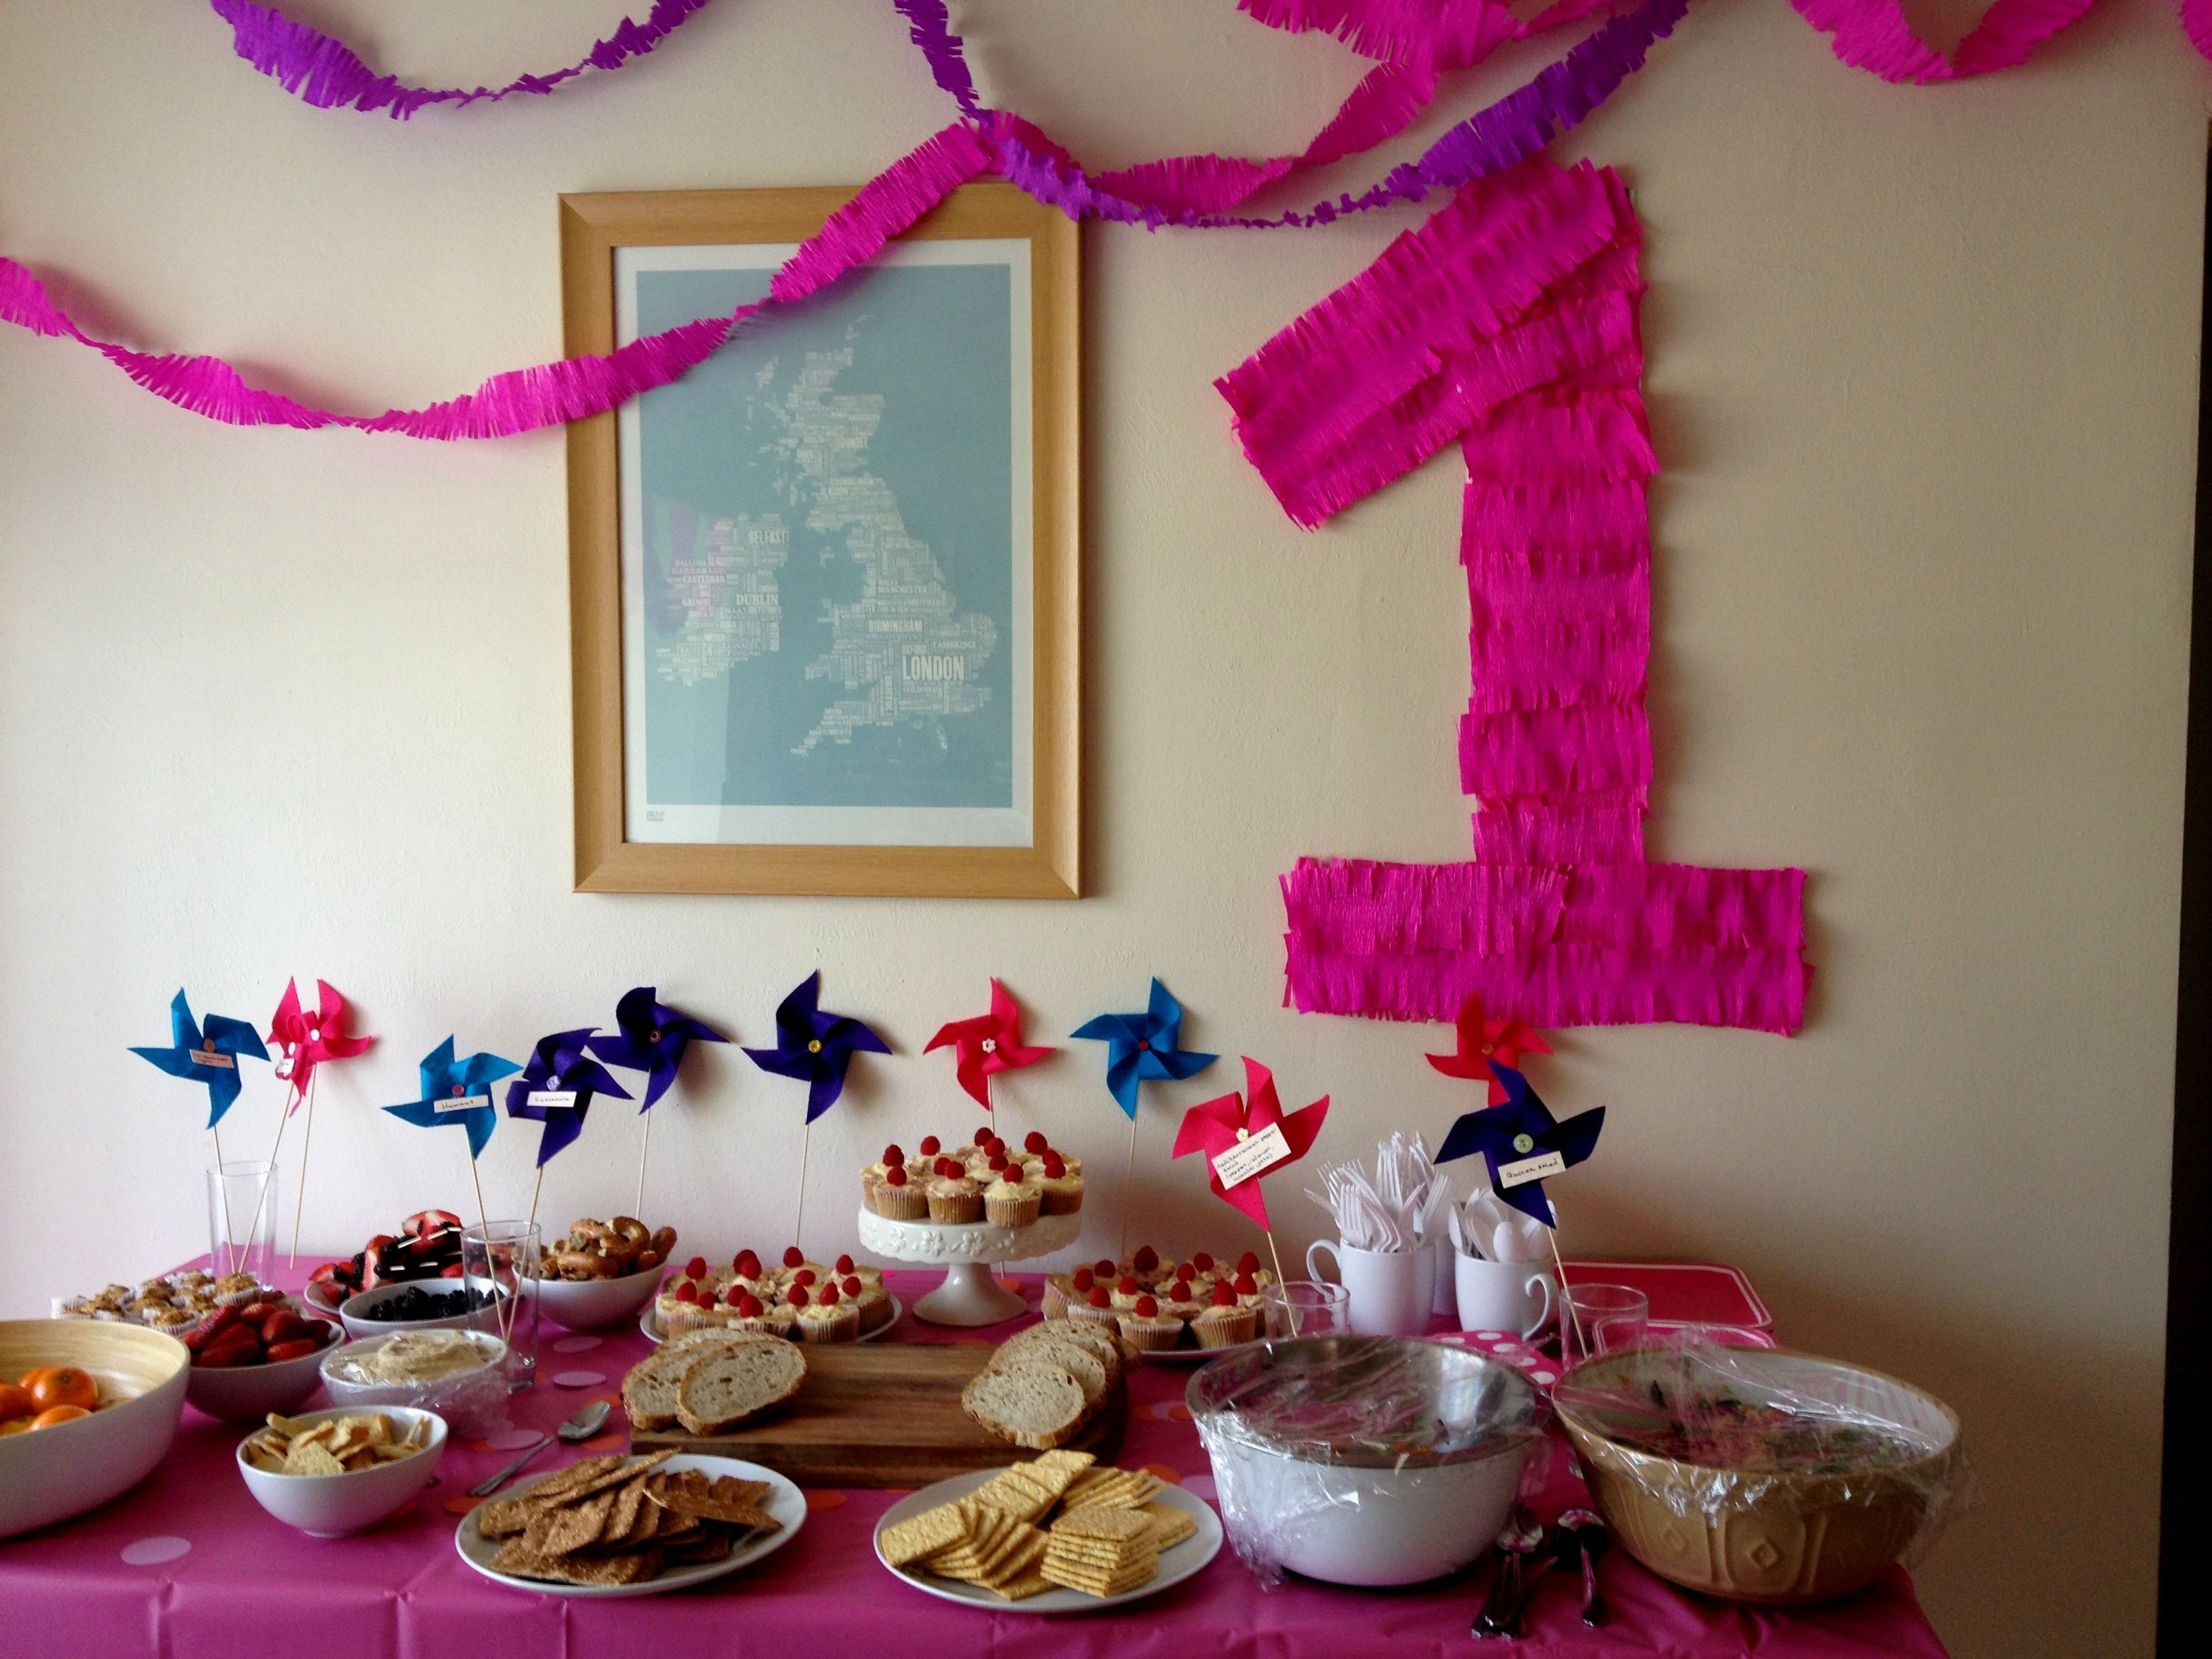 Best ideas about Birthday Party Decorations At Home . Save or Pin Fresh First Birthday Decoration Ideas at Home for Girl Now.